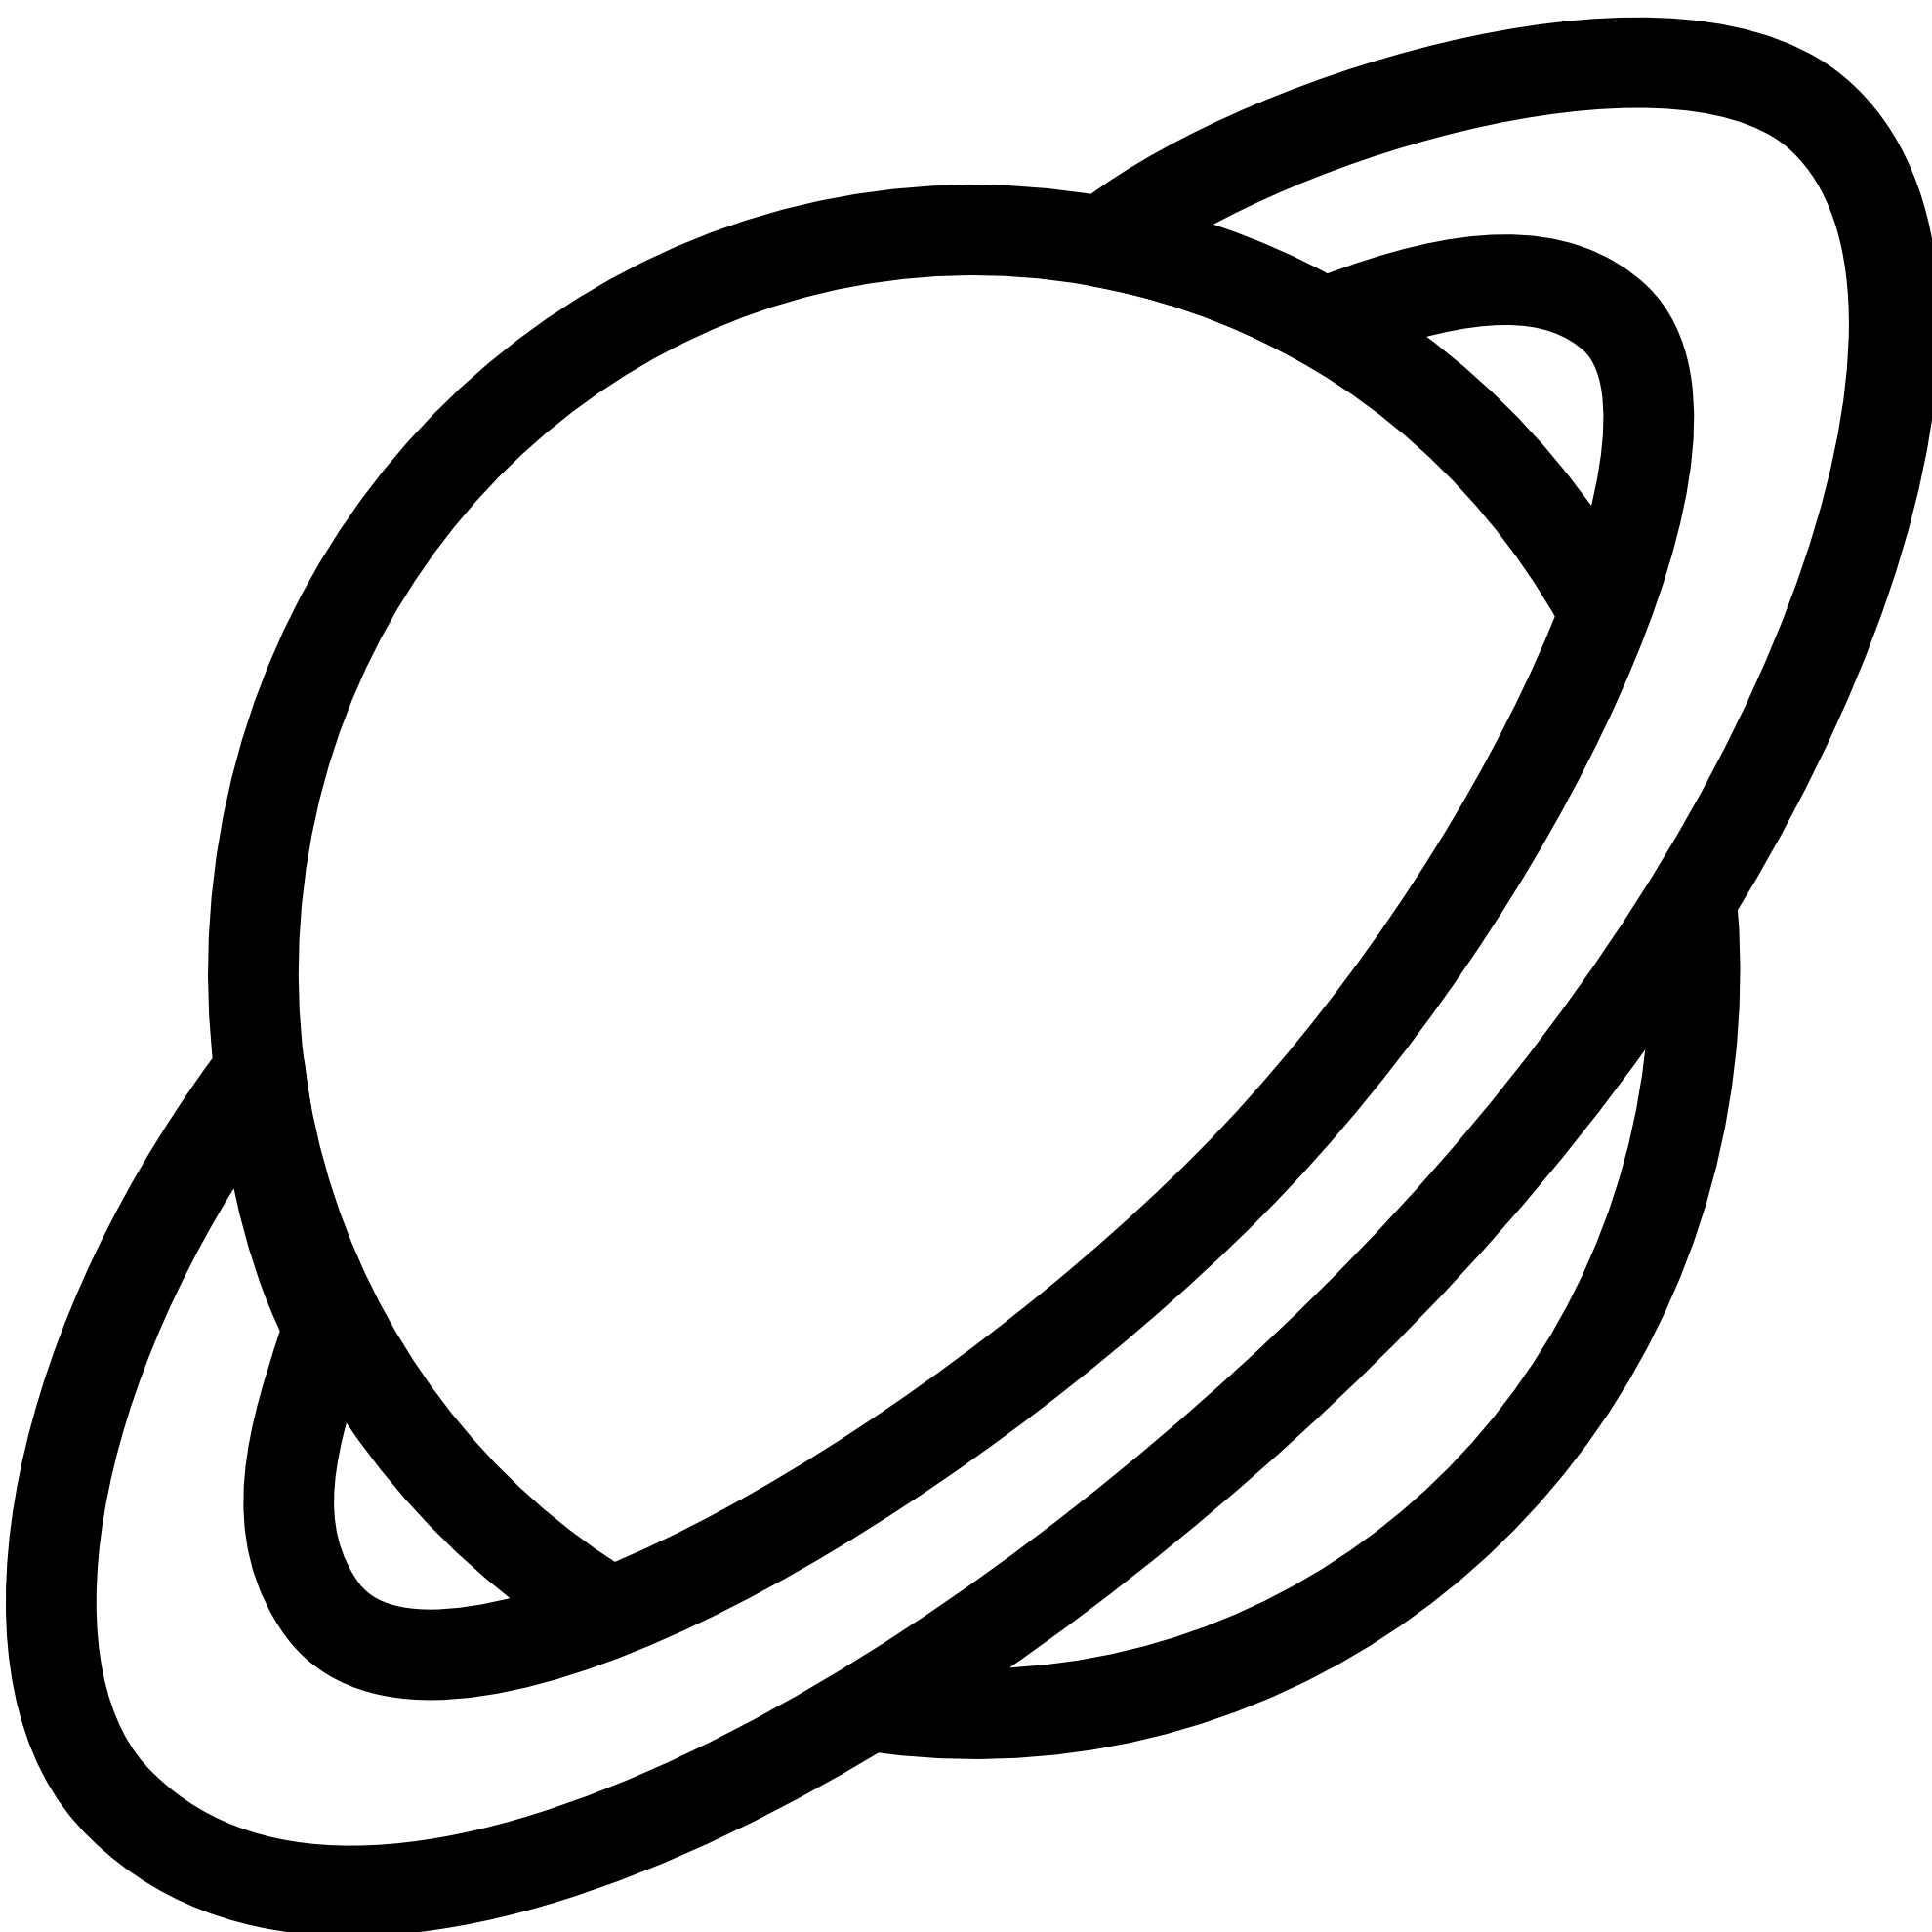 Free Black And White Planet, Download Free Clip Art, Free.